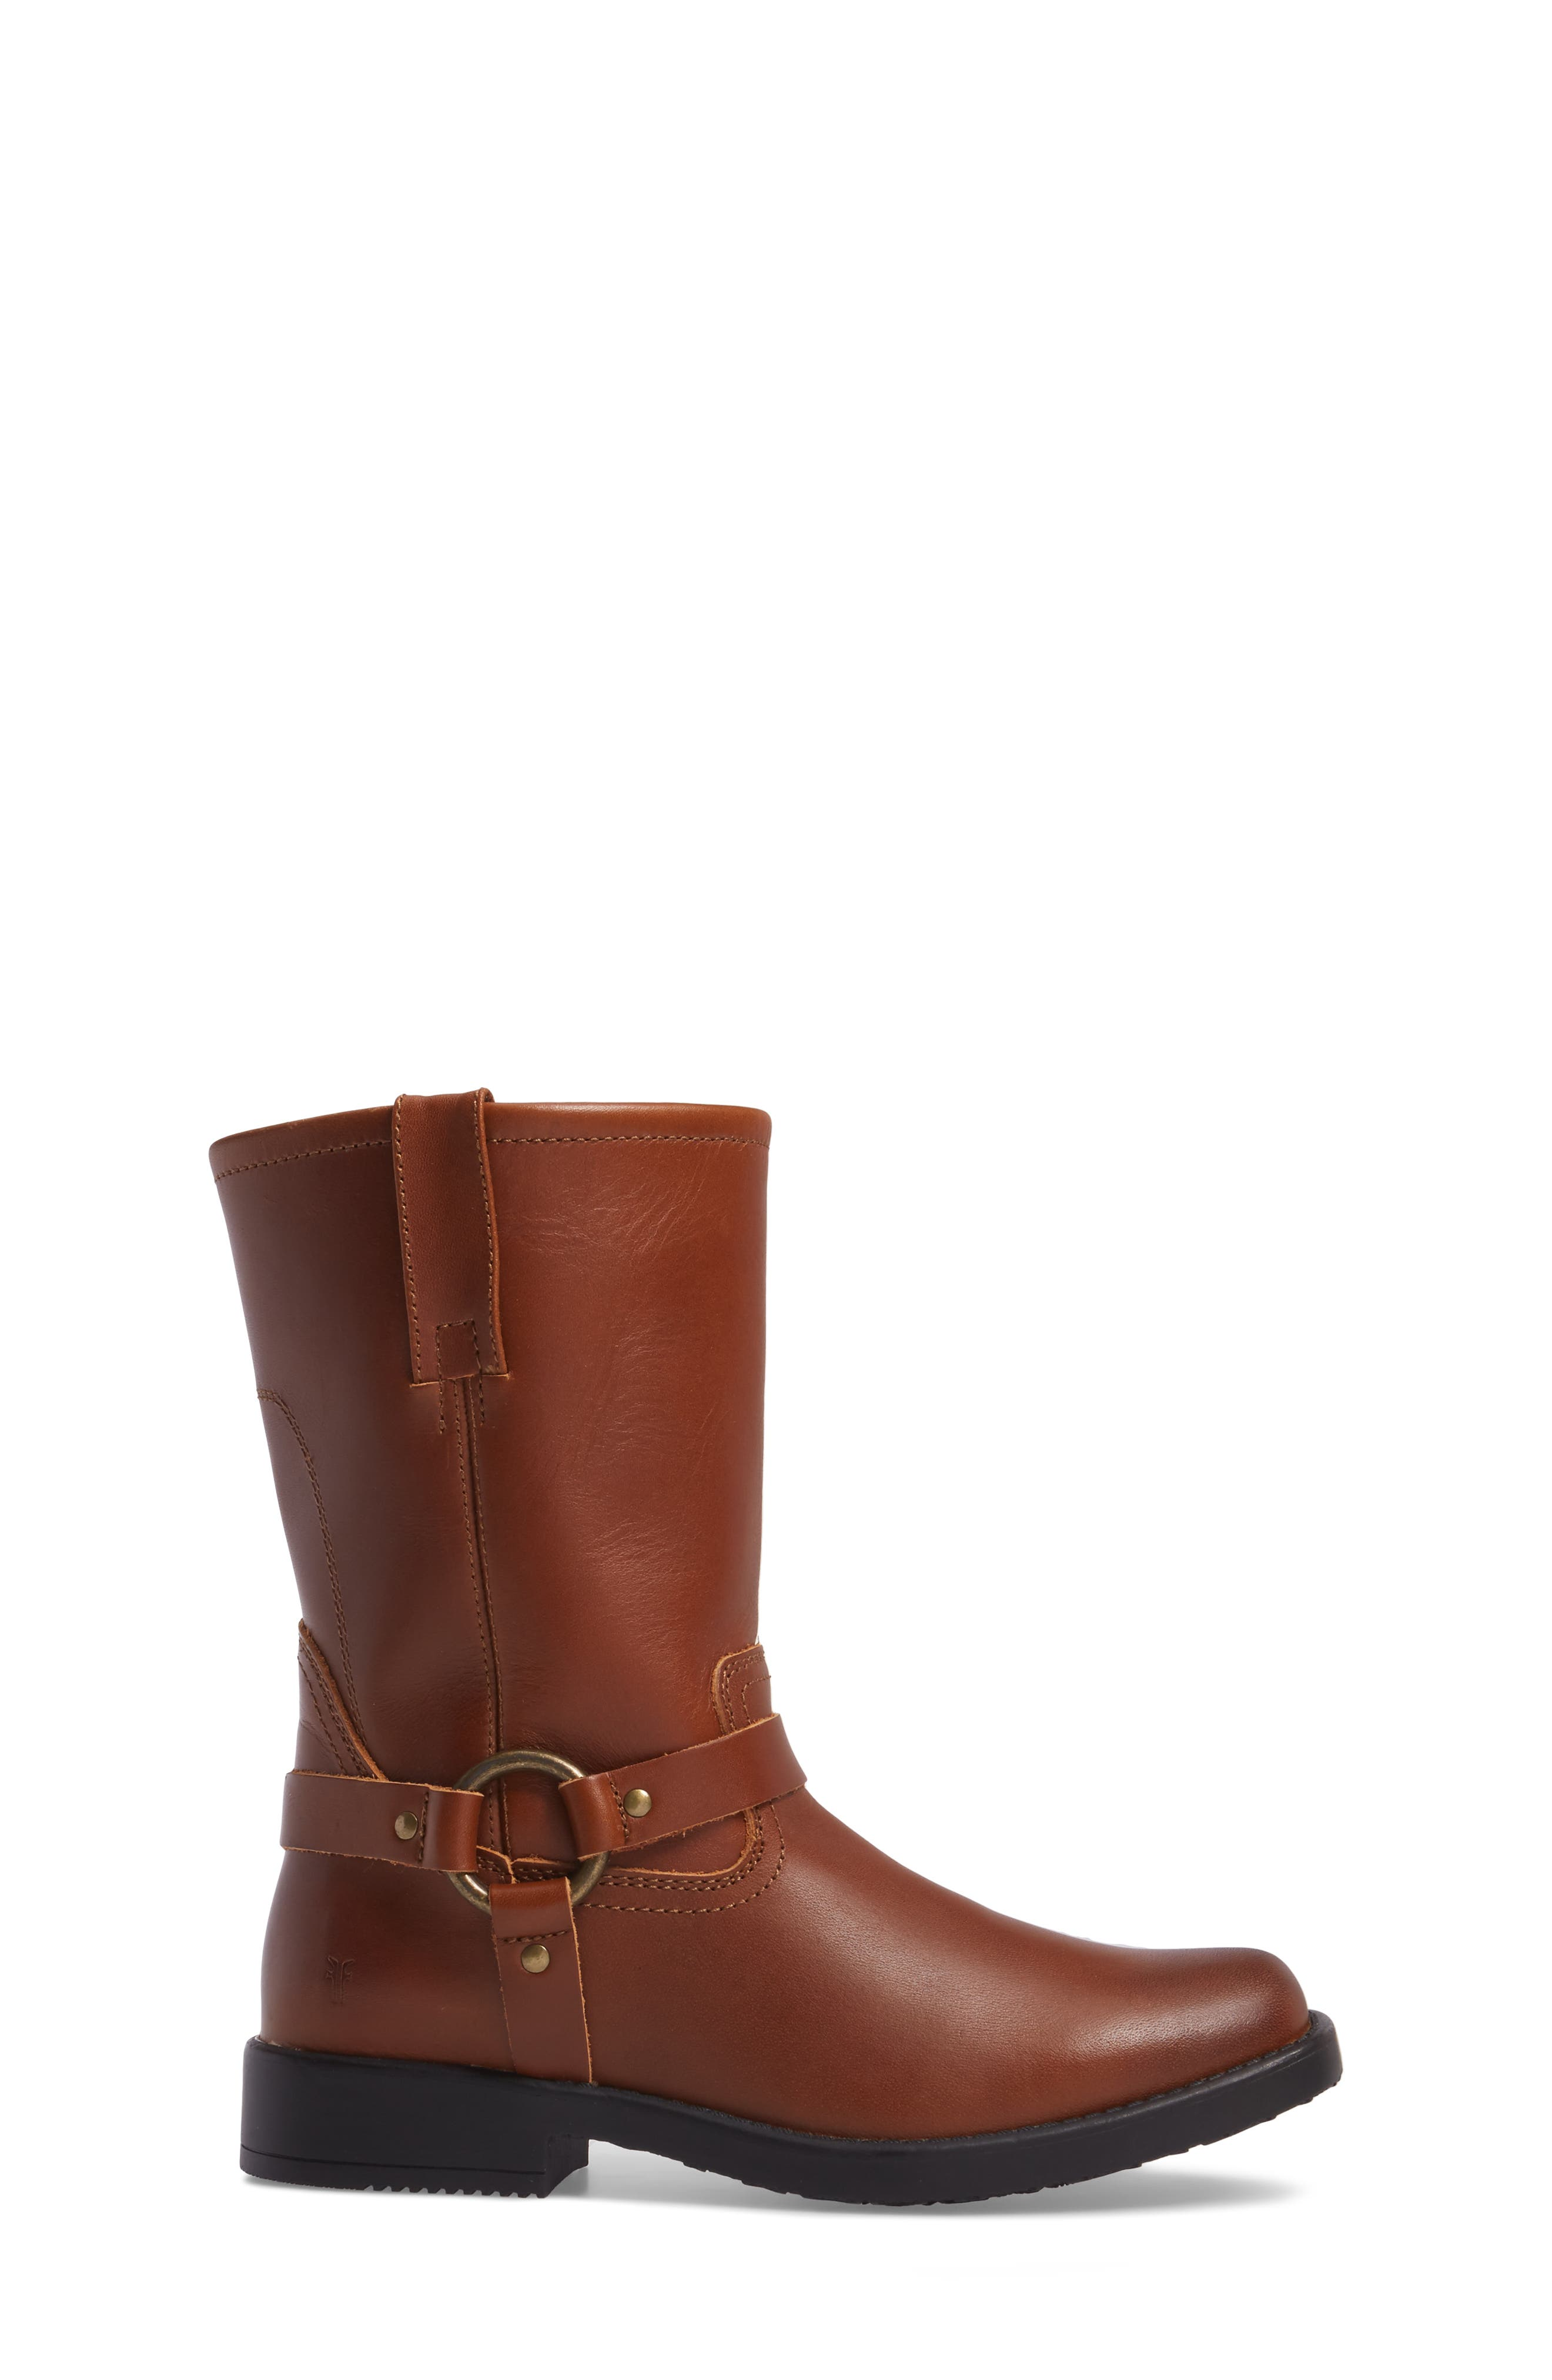 Harness Engineer Boot,                             Alternate thumbnail 3, color,                             Cognac